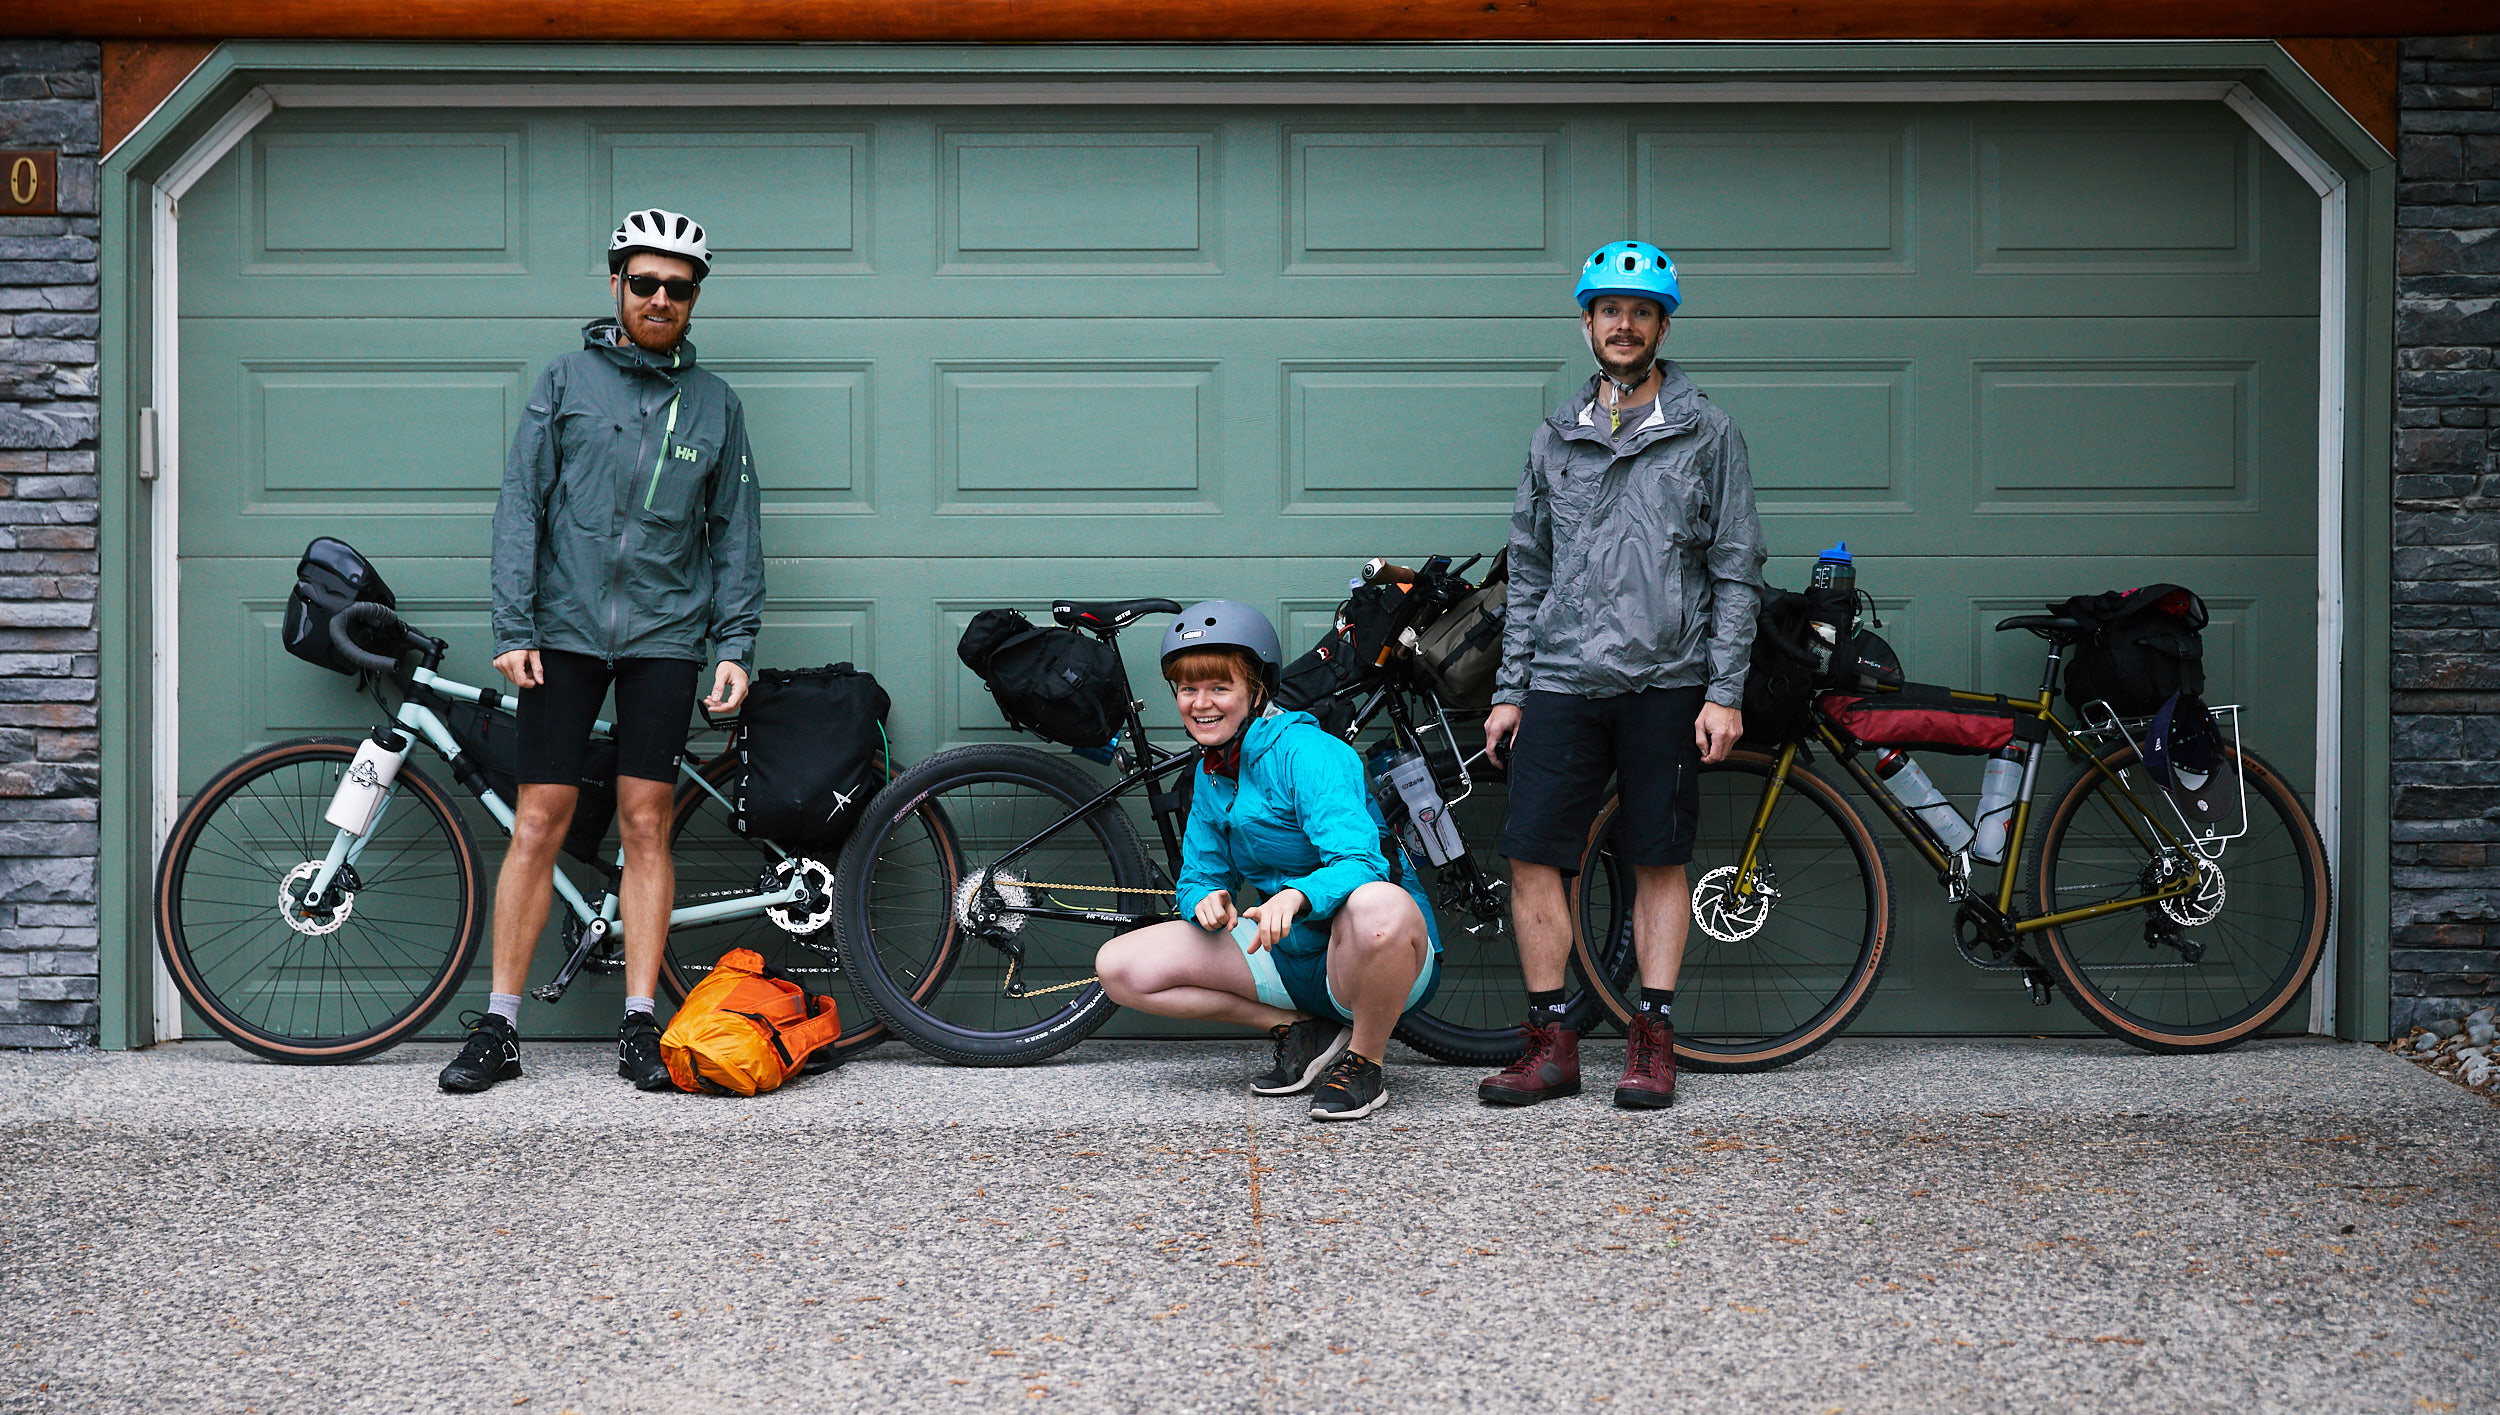 We started our trip in Canmore with some light rain early Saturday morning.